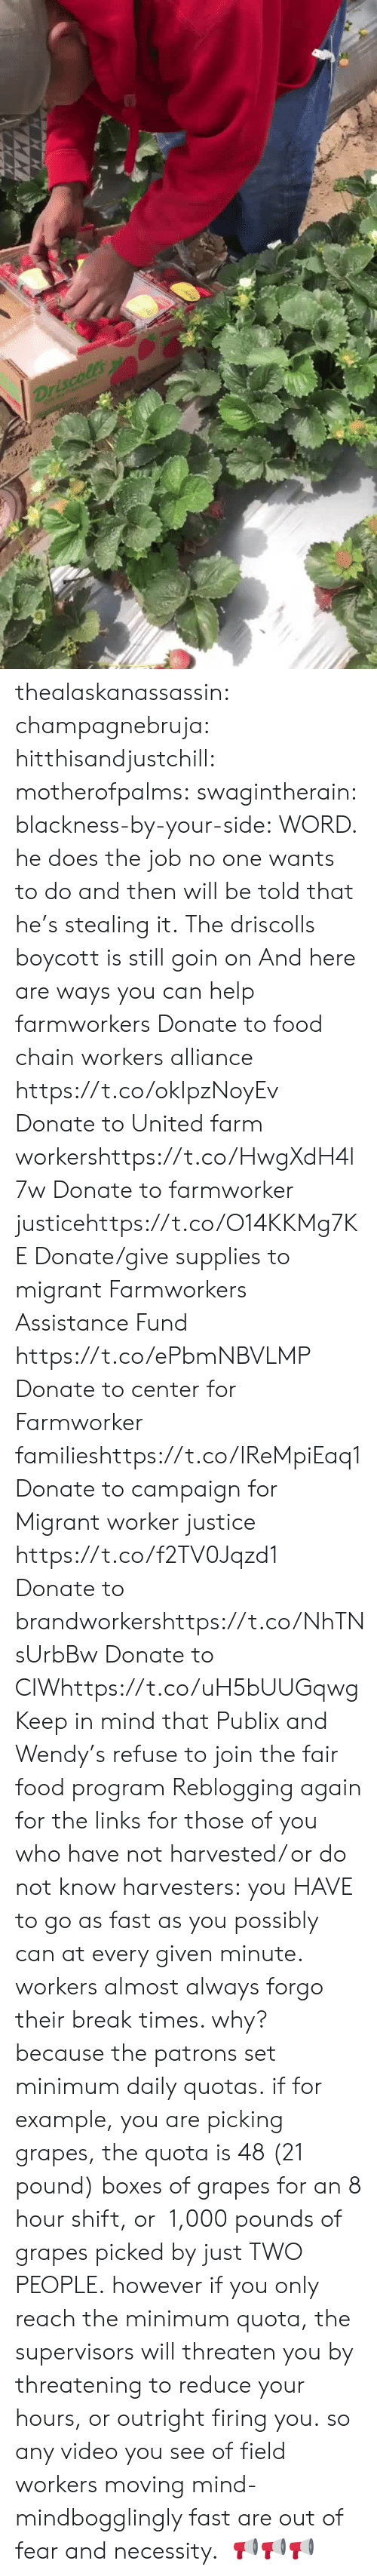 Campaigner: thealaskanassassin:  champagnebruja:  hitthisandjustchill:  motherofpalms:  swagintherain:  blackness-by-your-side:  WORD.  he does the job no one wants to do and then will be told that he's stealing it.   The driscolls boycott is still goin on And here are ways you can help farmworkers Donate to food chain workers alliance  https://t.co/okIpzNoyEv Donate to United farm workershttps://t.co/HwgXdH4l7w Donate to farmworker justicehttps://t.co/O14KKMg7KE Donate/give supplies to migrant Farmworkers Assistance Fund https://t.co/ePbmNBVLMP Donate to center for Farmworker familieshttps://t.co/IReMpiEaq1 Donate to campaign for Migrant worker justice https://t.co/f2TV0Jqzd1 Donate to brandworkershttps://t.co/NhTNsUrbBw Donate to CIWhttps://t.co/uH5bUUGqwg Keep in mind that Publix and Wendy's   refuse to join the fair food program   Reblogging again for the links  for those of you who have not harvested/ or do not know harvesters: you HAVE to go as fast as you possibly can at every given minute. workers almost always forgo their break times. why? because the patrons set minimum daily quotas. if for example, you are picking grapes, the quota is 48 (21 pound) boxes of grapes for an 8 hour shift, or 1,000 pounds of grapes picked by just TWO PEOPLE.however if you only reach the minimum quota, the supervisors will threaten you by threatening to reduce your hours, or outright firing you. so any video you see of field workers moving mind-mindbogglingly fast are out of fear and necessity.   📢📢📢